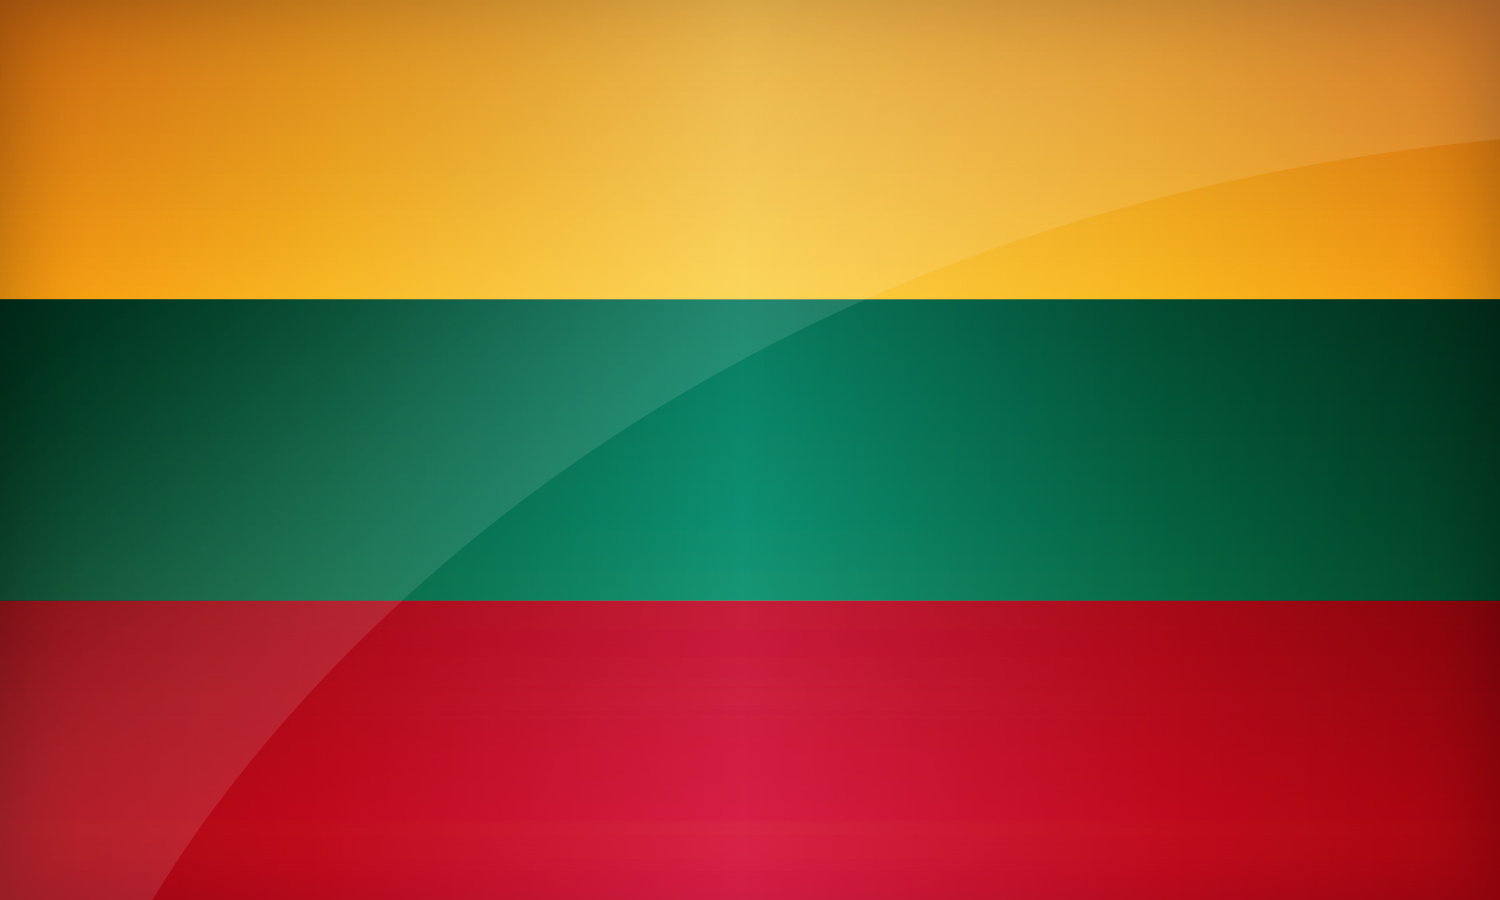 http://www.all-flags-world.com/country-flag/Lithuania/flag-lithuania-XL.jpg?325